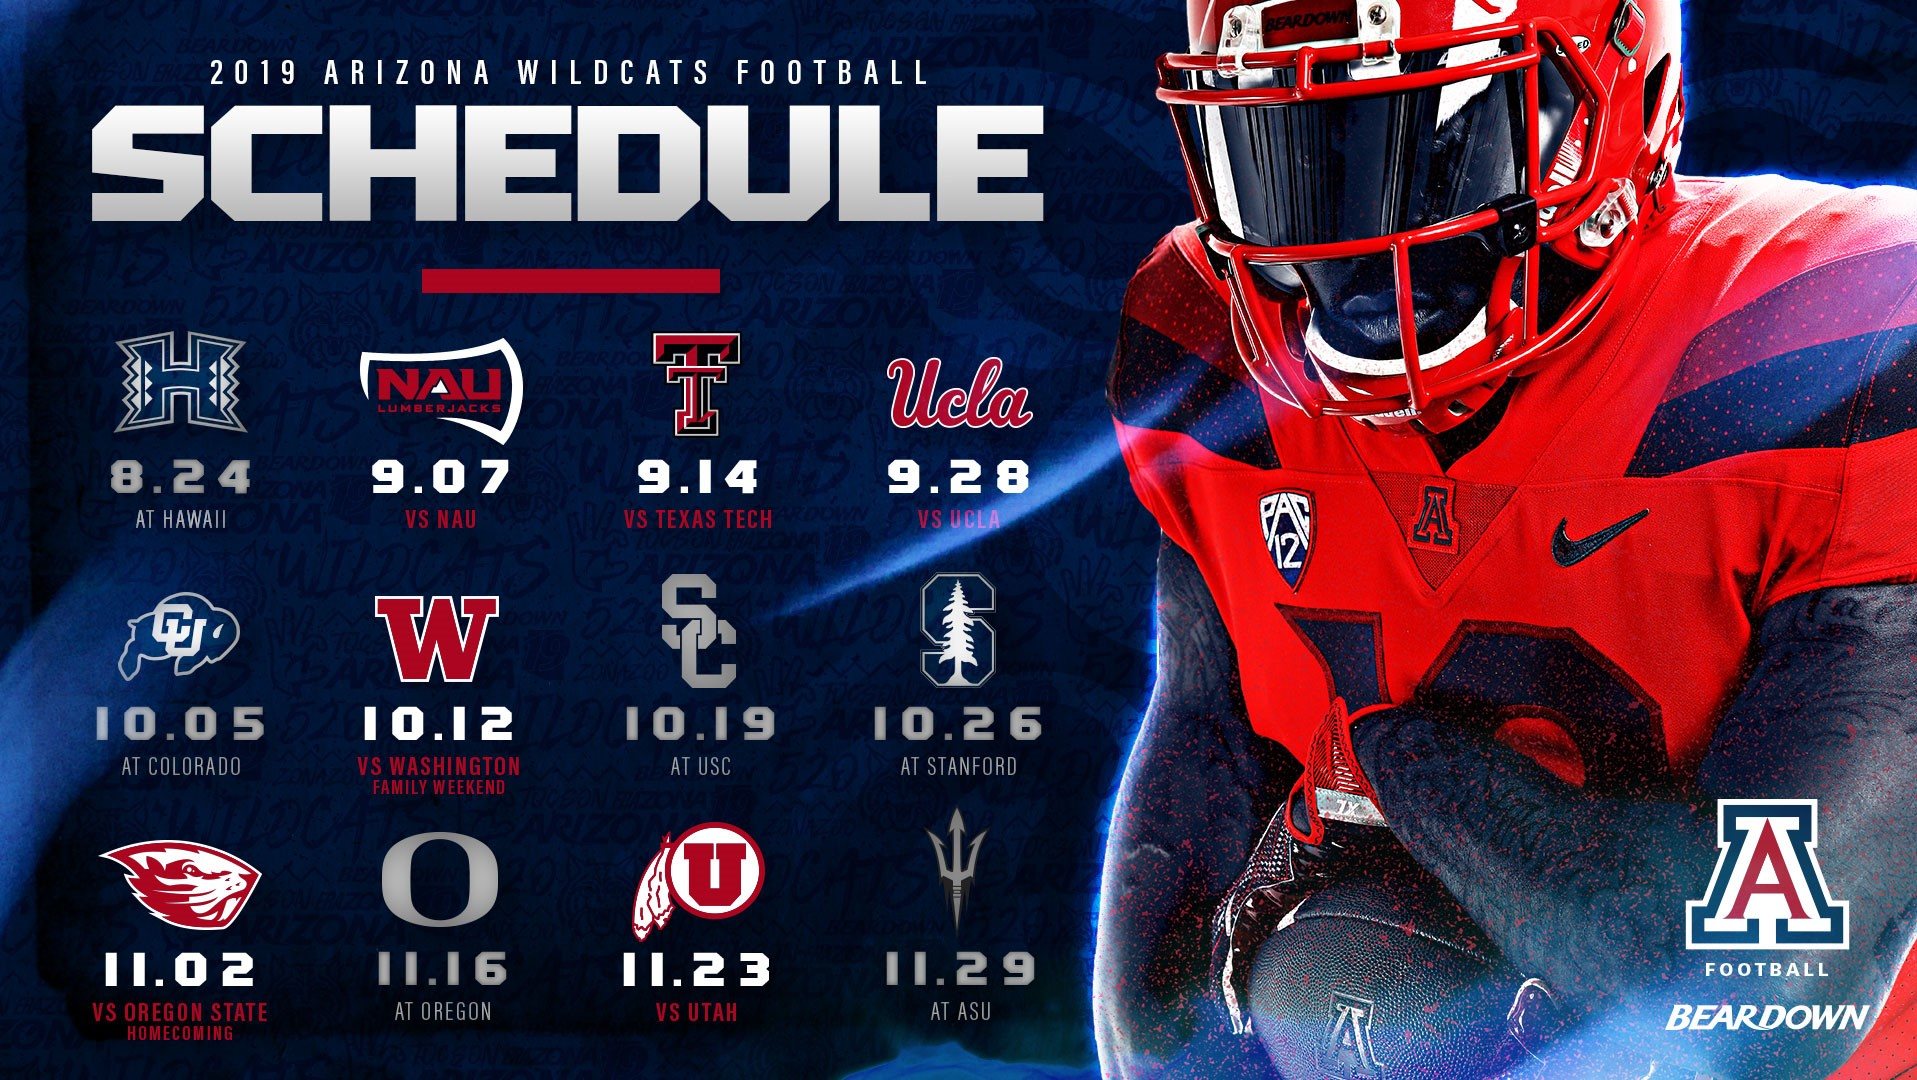 University Of Arizona Calendar 2020 2019 Arizona Football Schedule Announced   University of Arizona